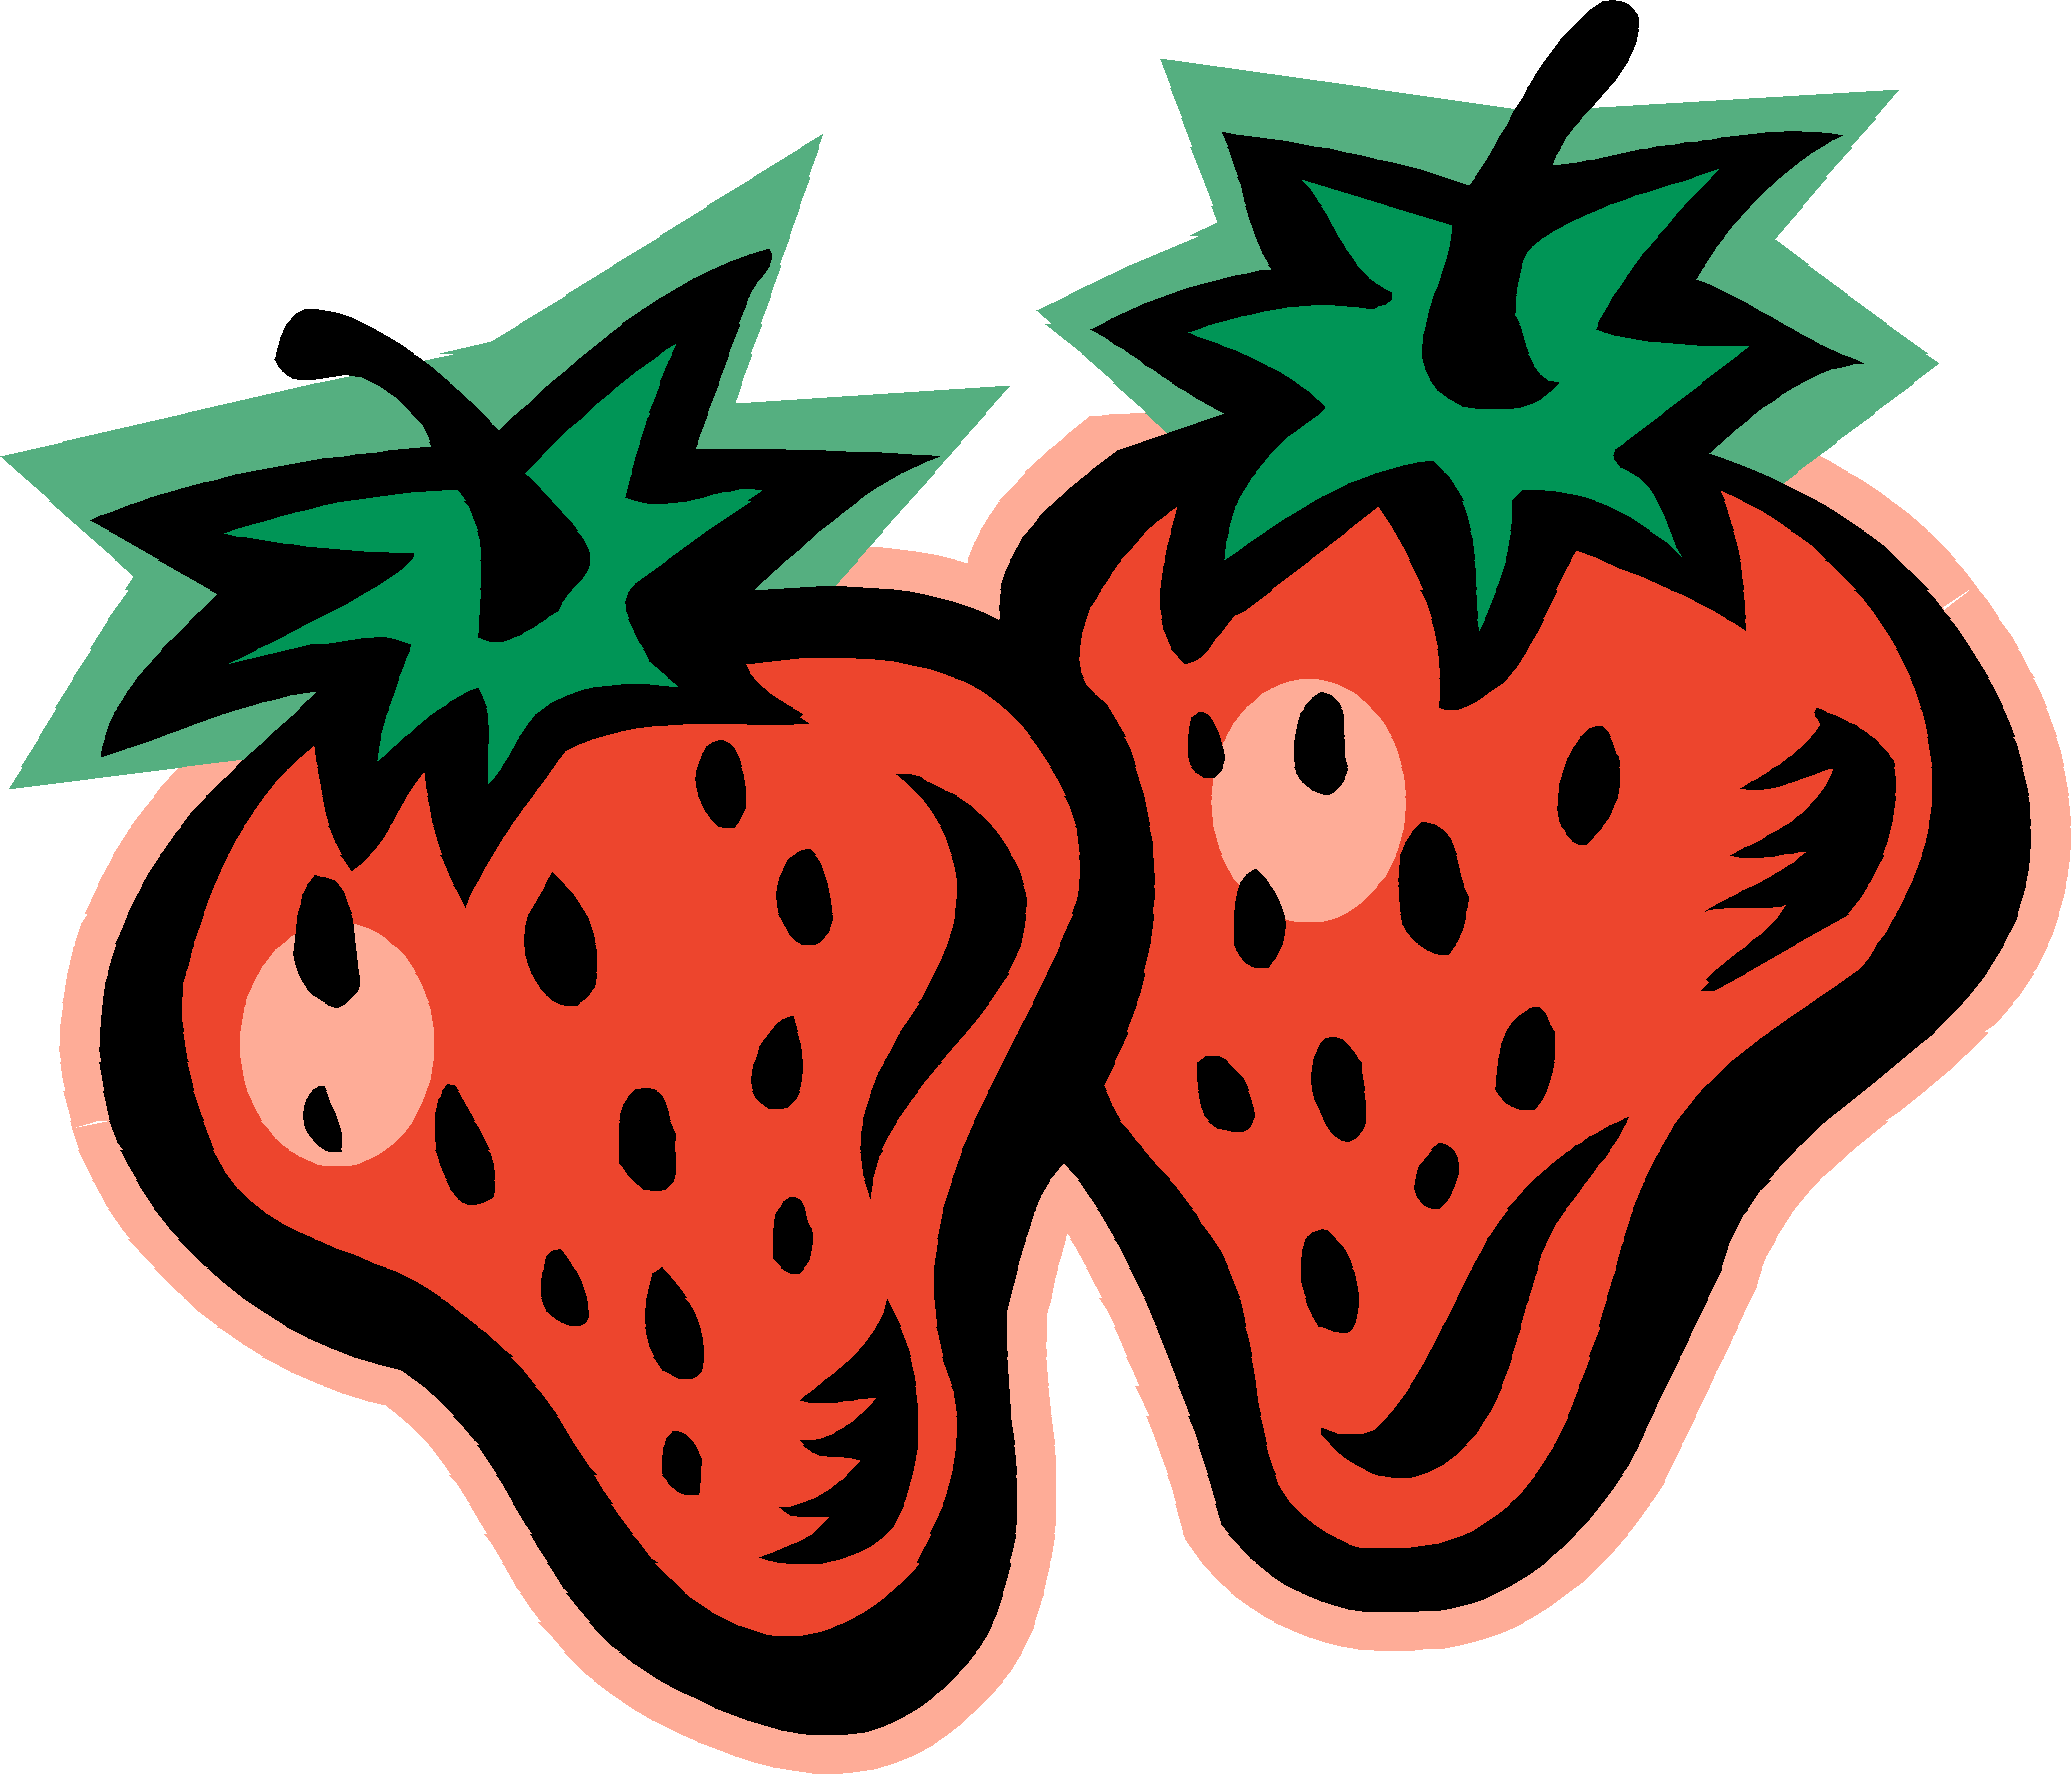 4 strawberries clipart clipart royalty free Strawberry clip art clipart 4 - WikiClipArt clipart royalty free